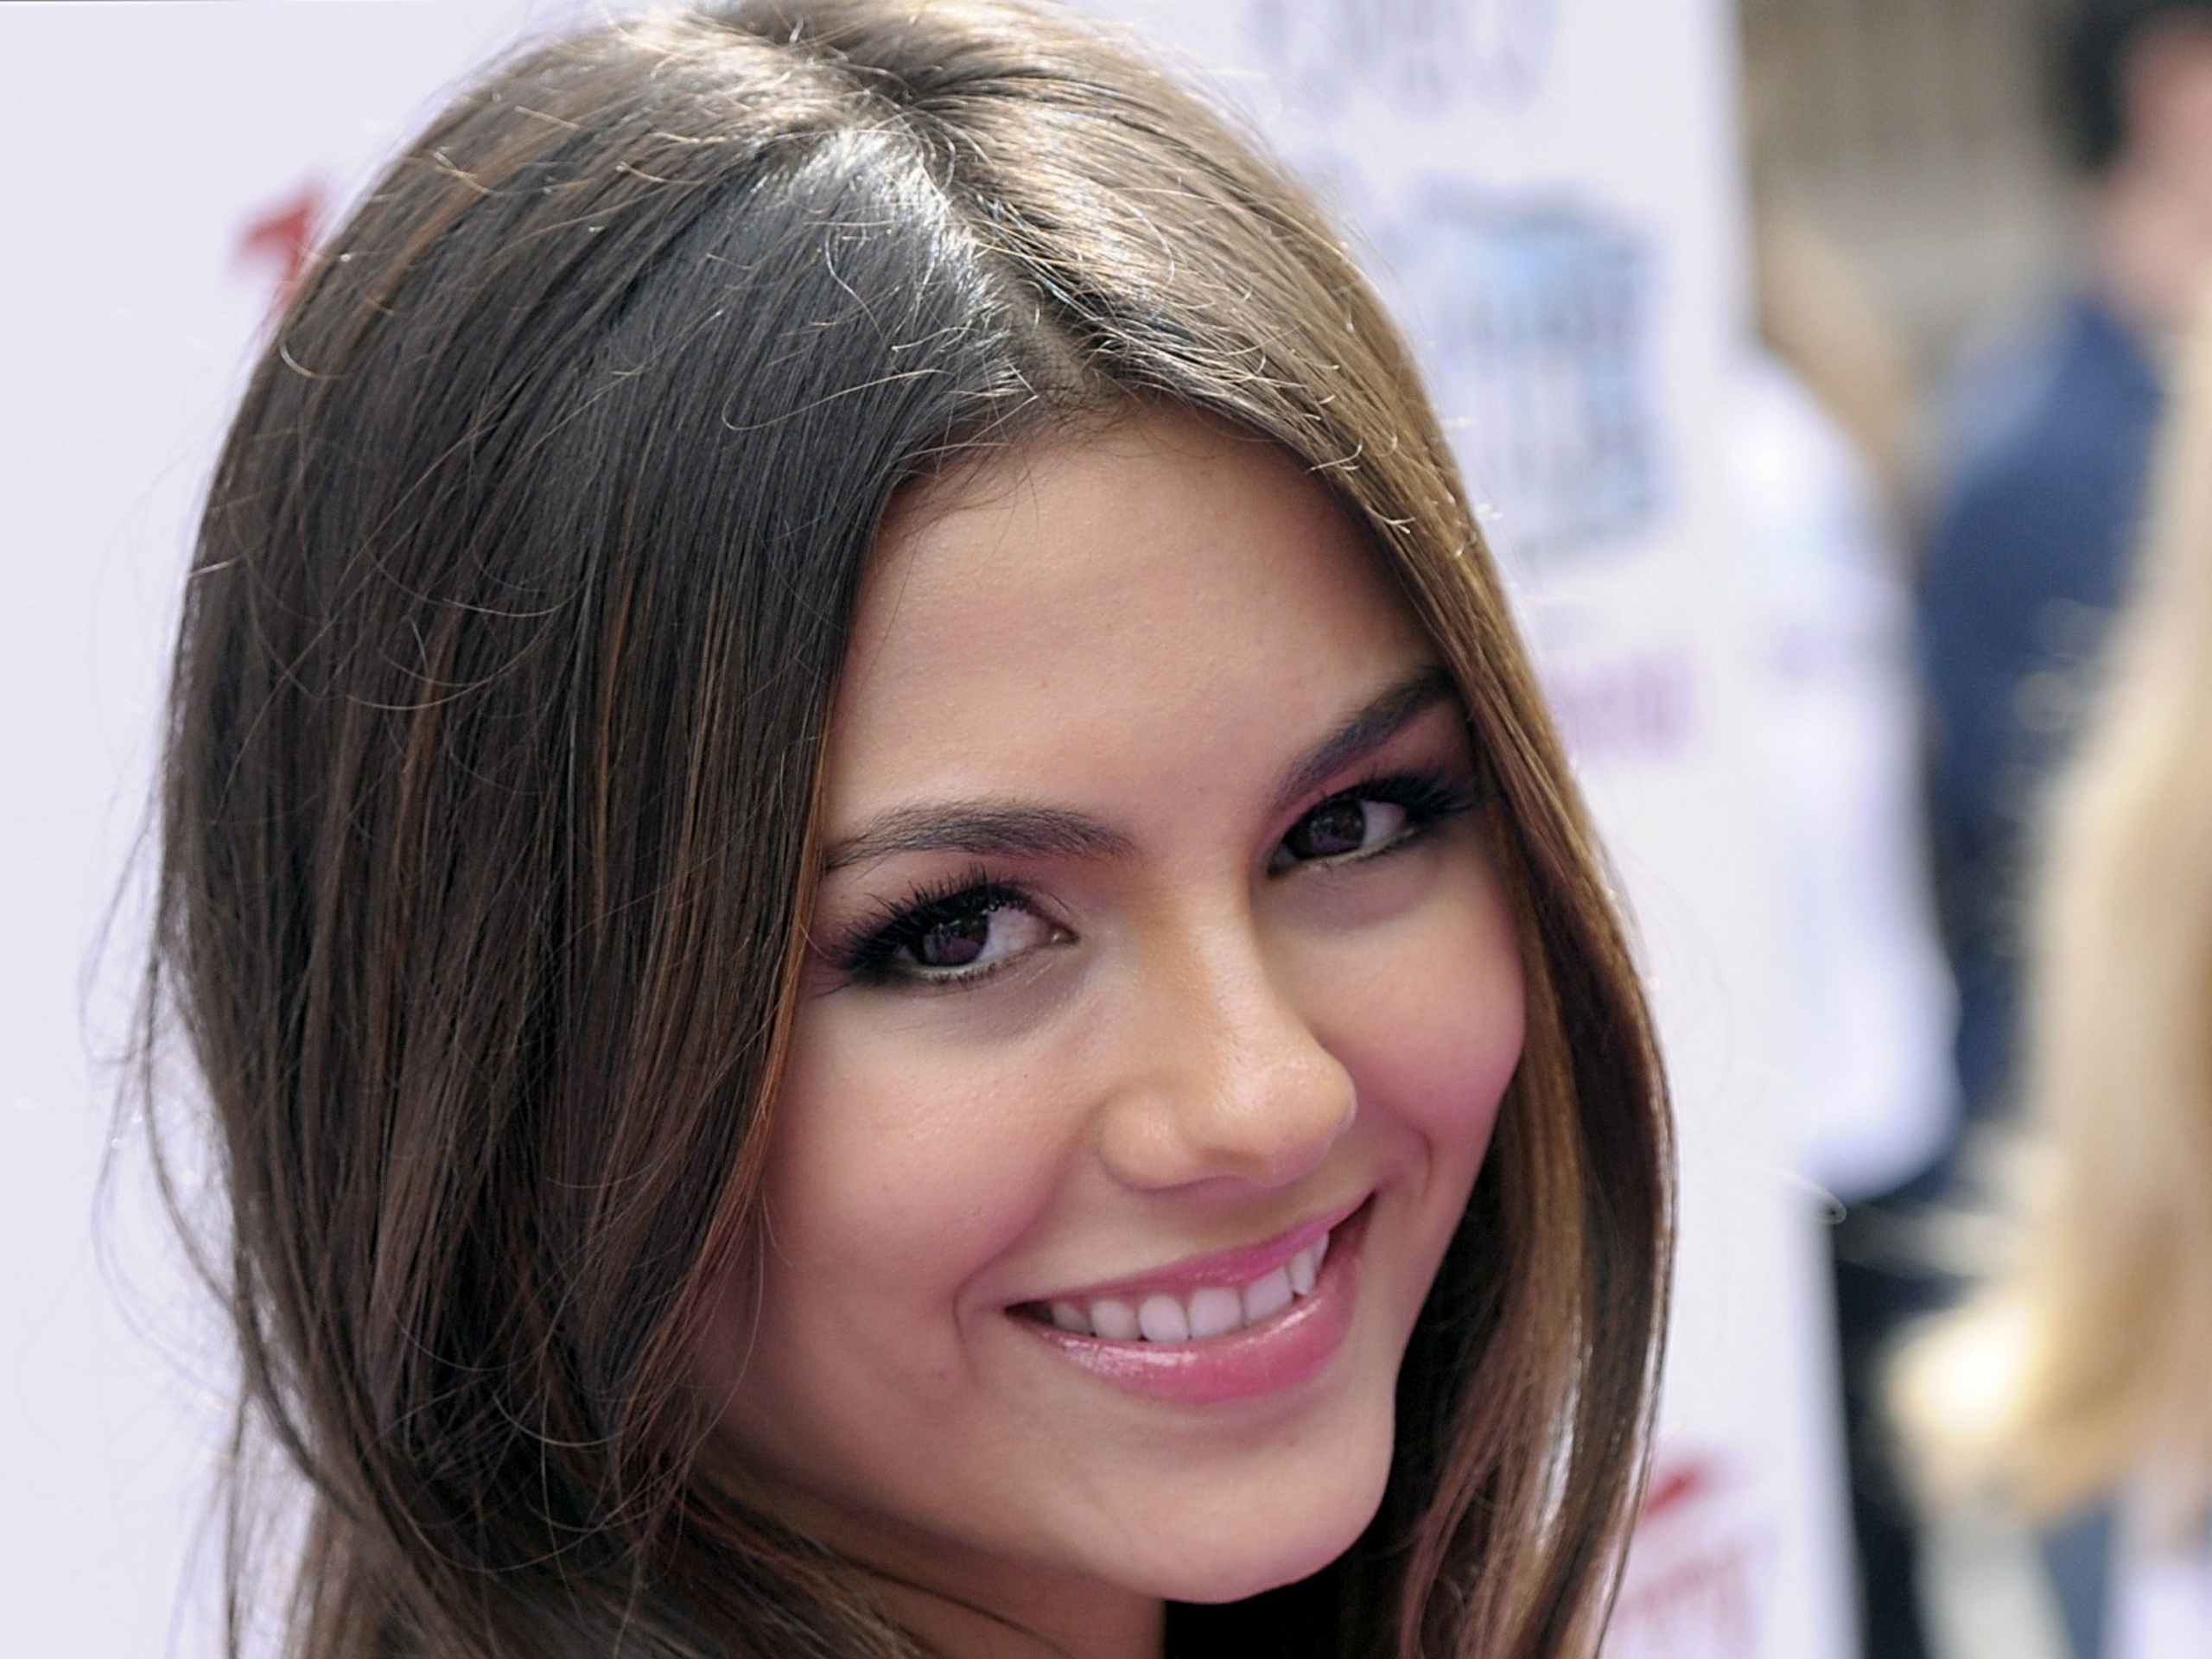 Fantastic Victoria Justice Smile Look Deskop Mobile Background Free Hd Pictures